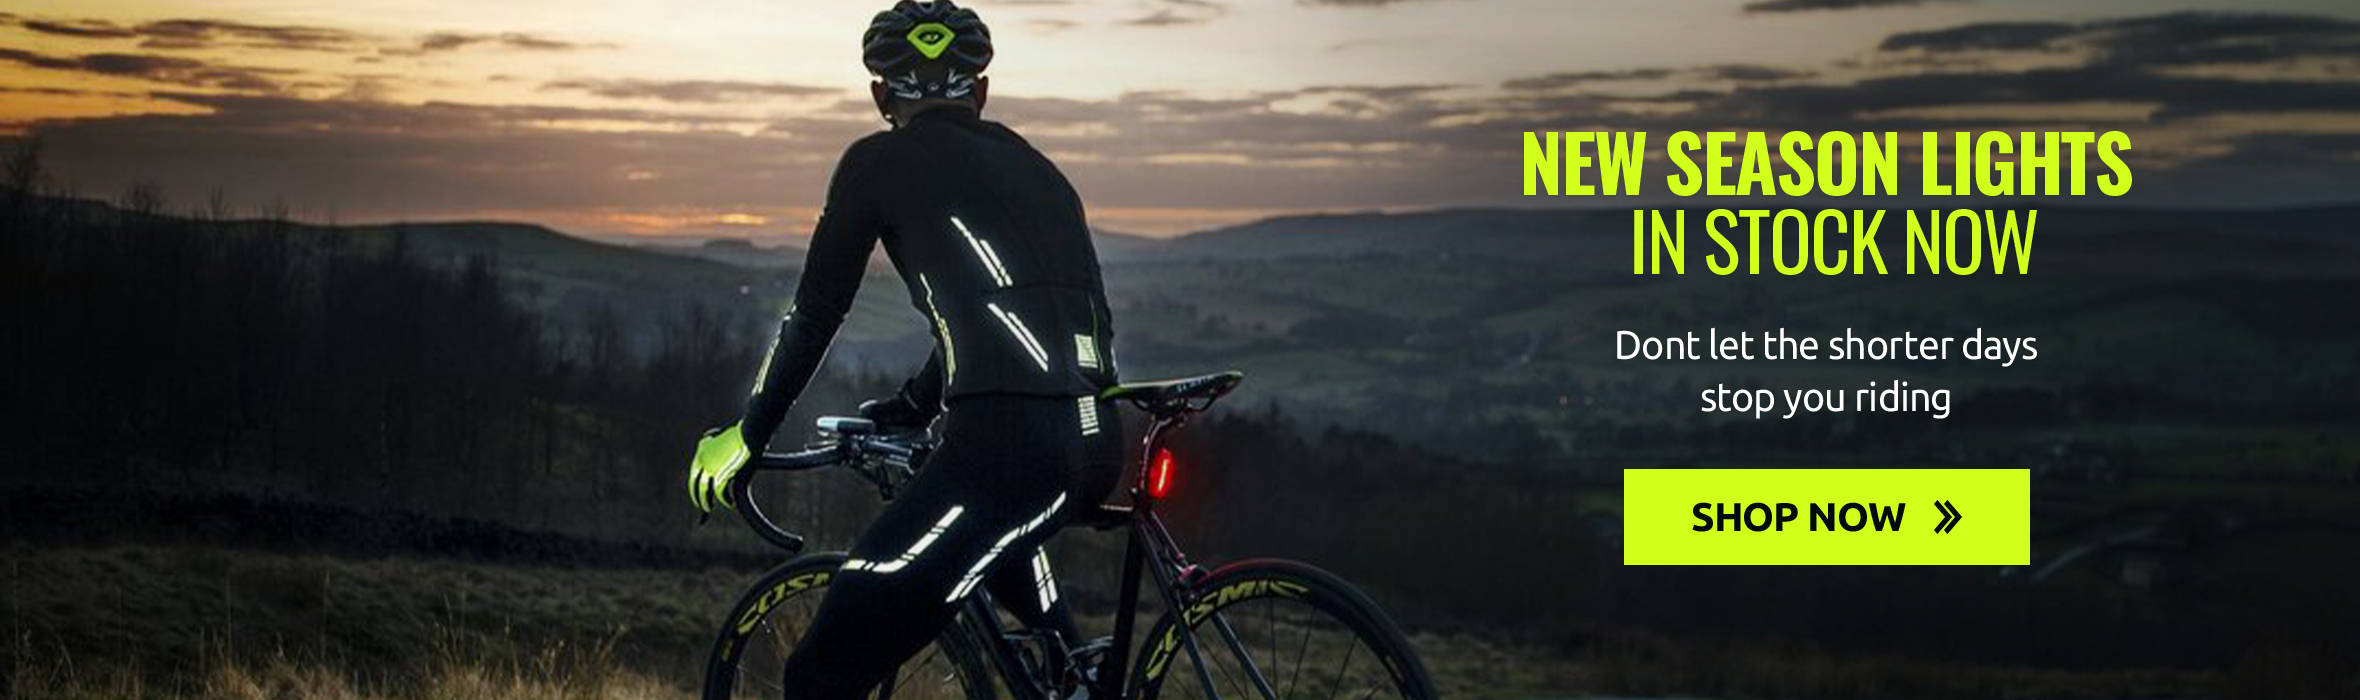 Dont let the shorter days stop you riding - New Season Lights - In stock now